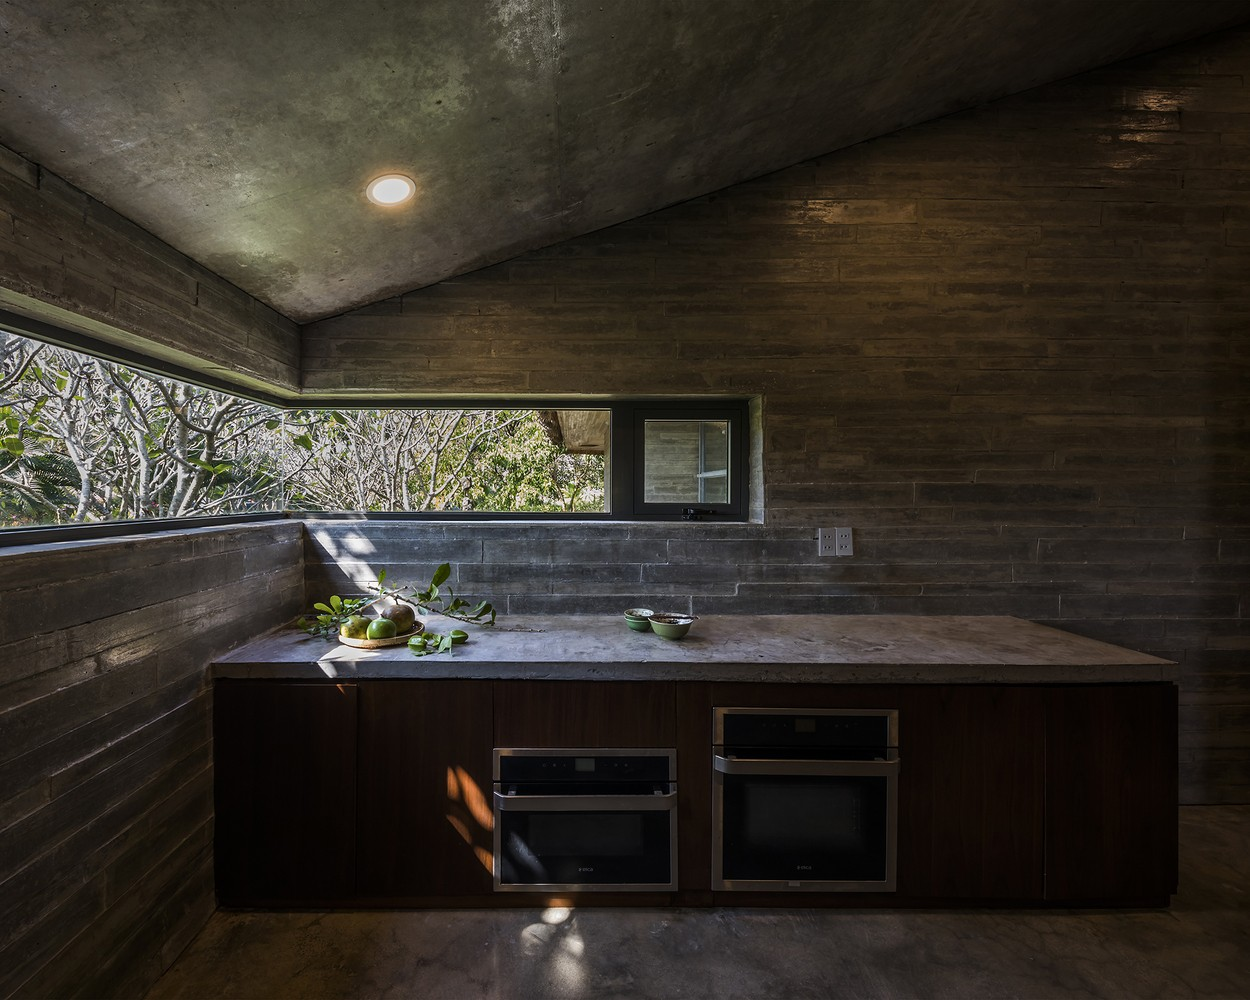 01-CTA-Am_house-in_17